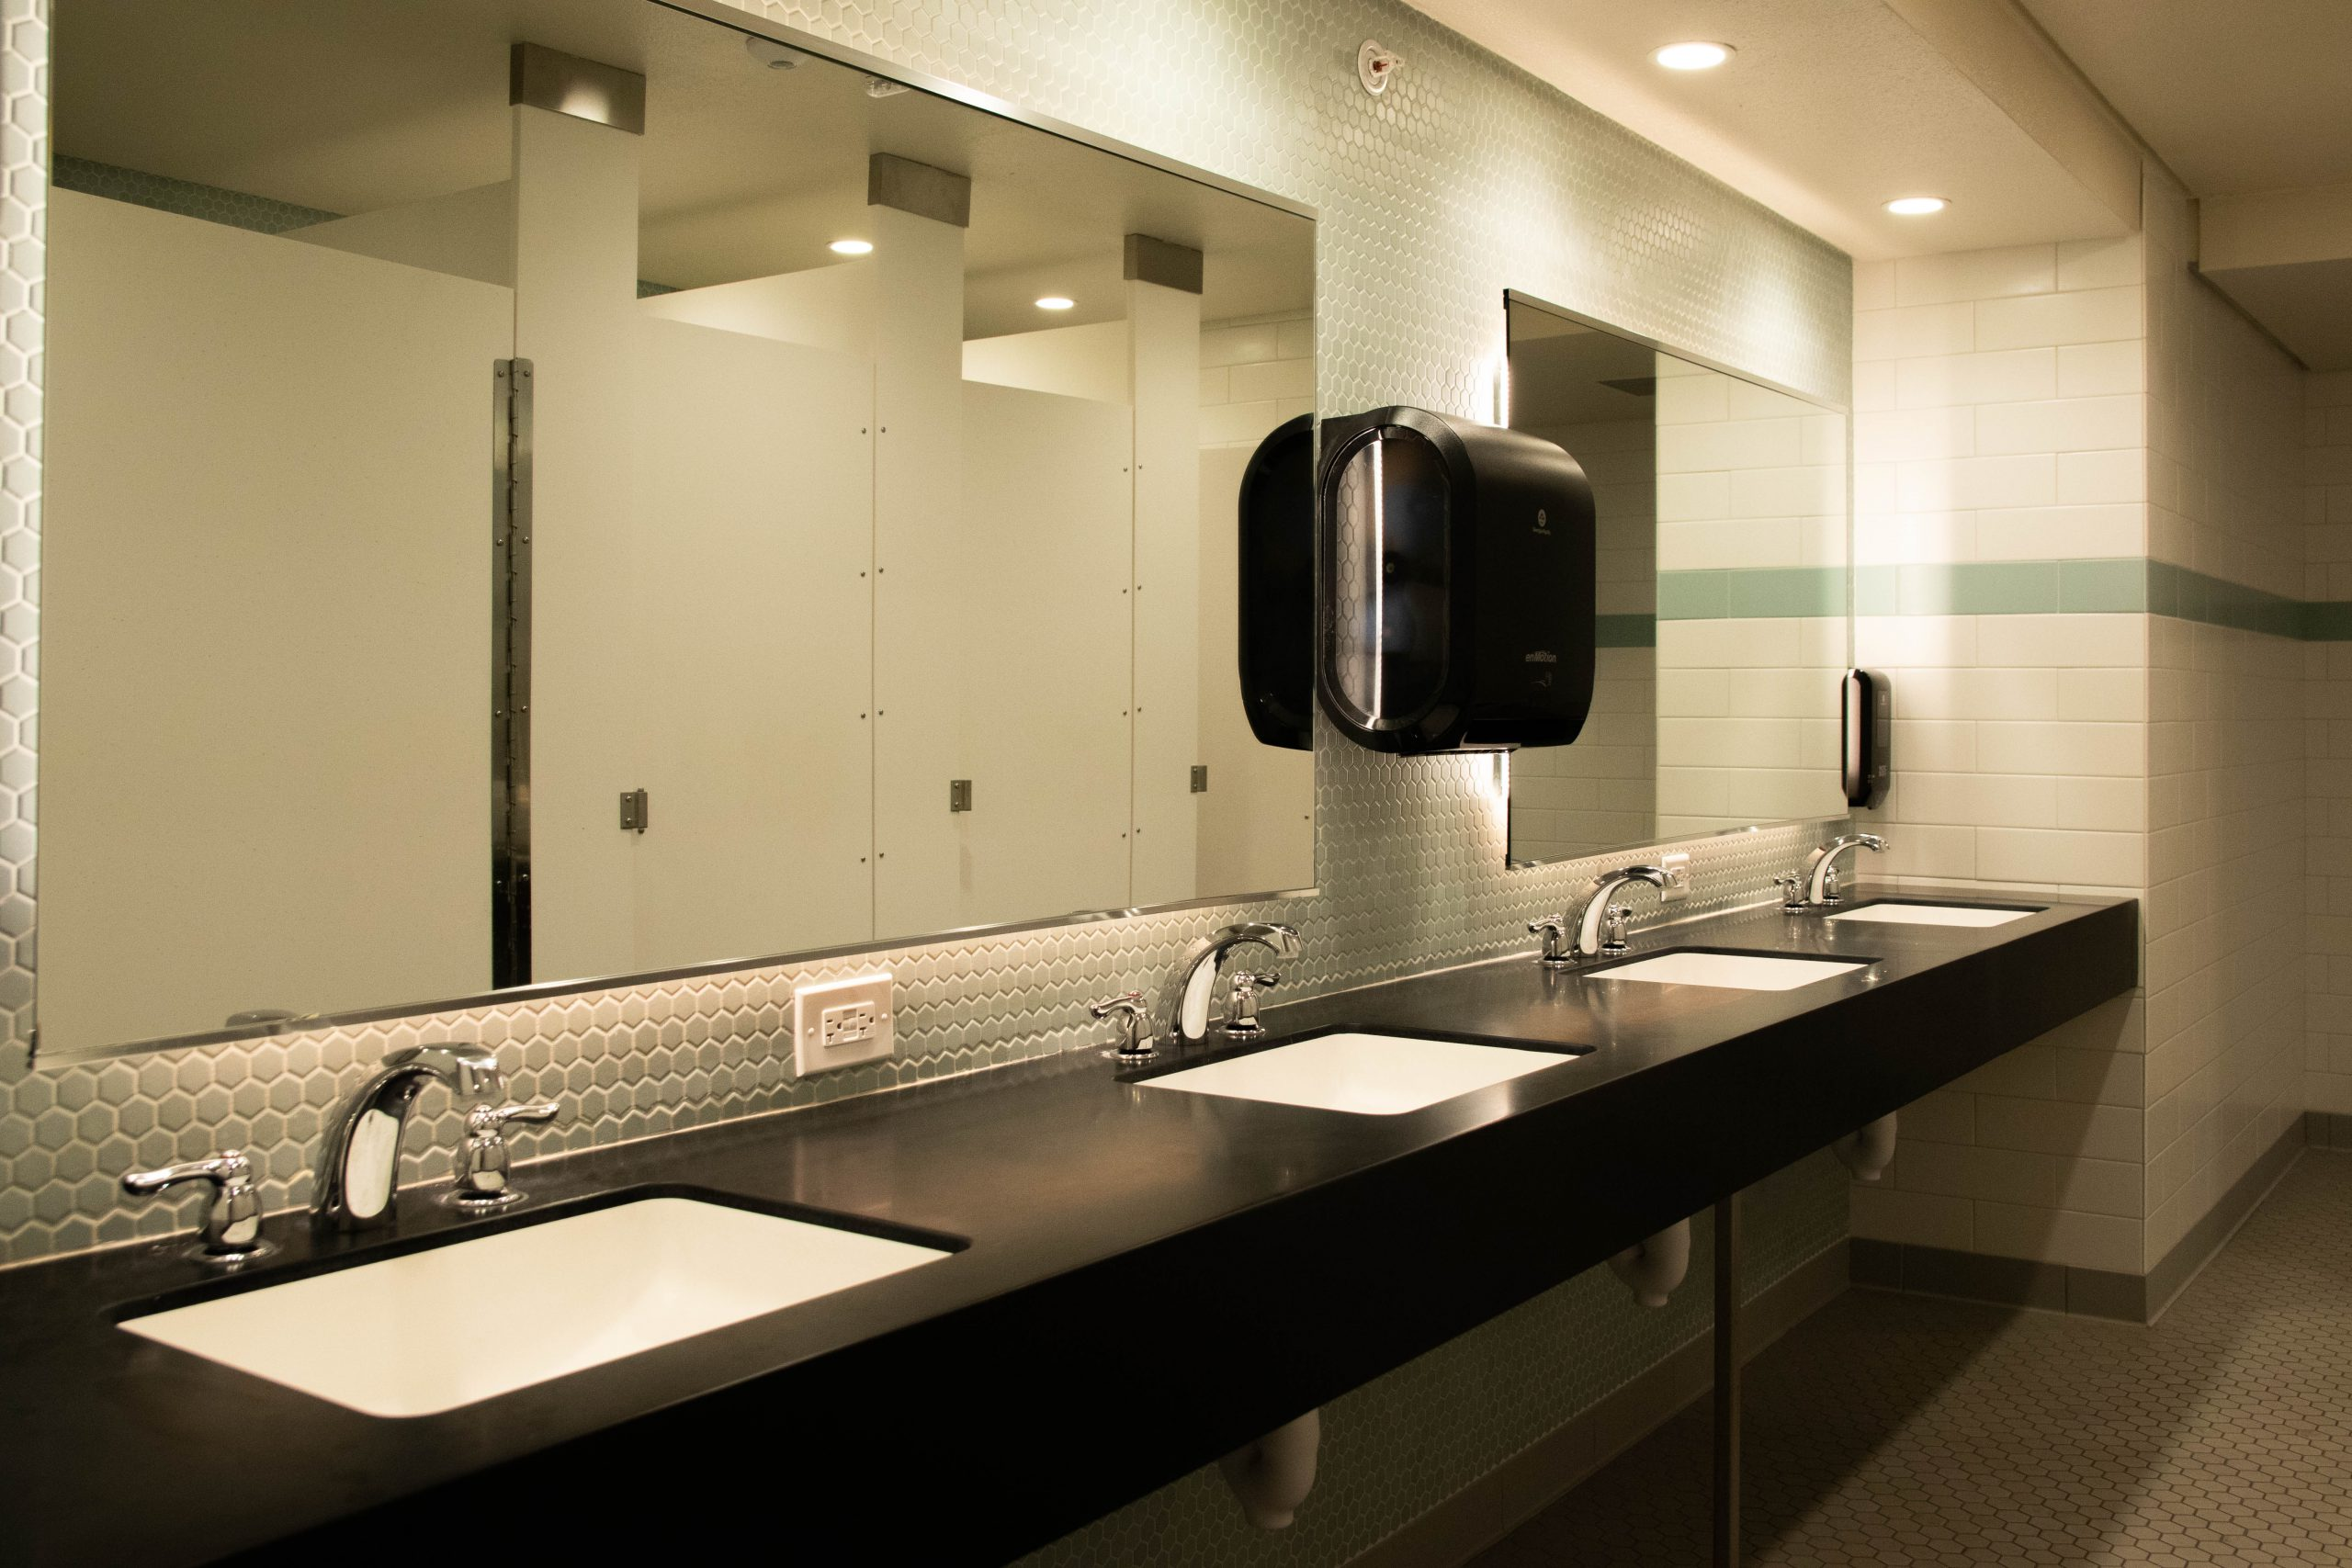 Interior Image of Legett Bathroom Sinks